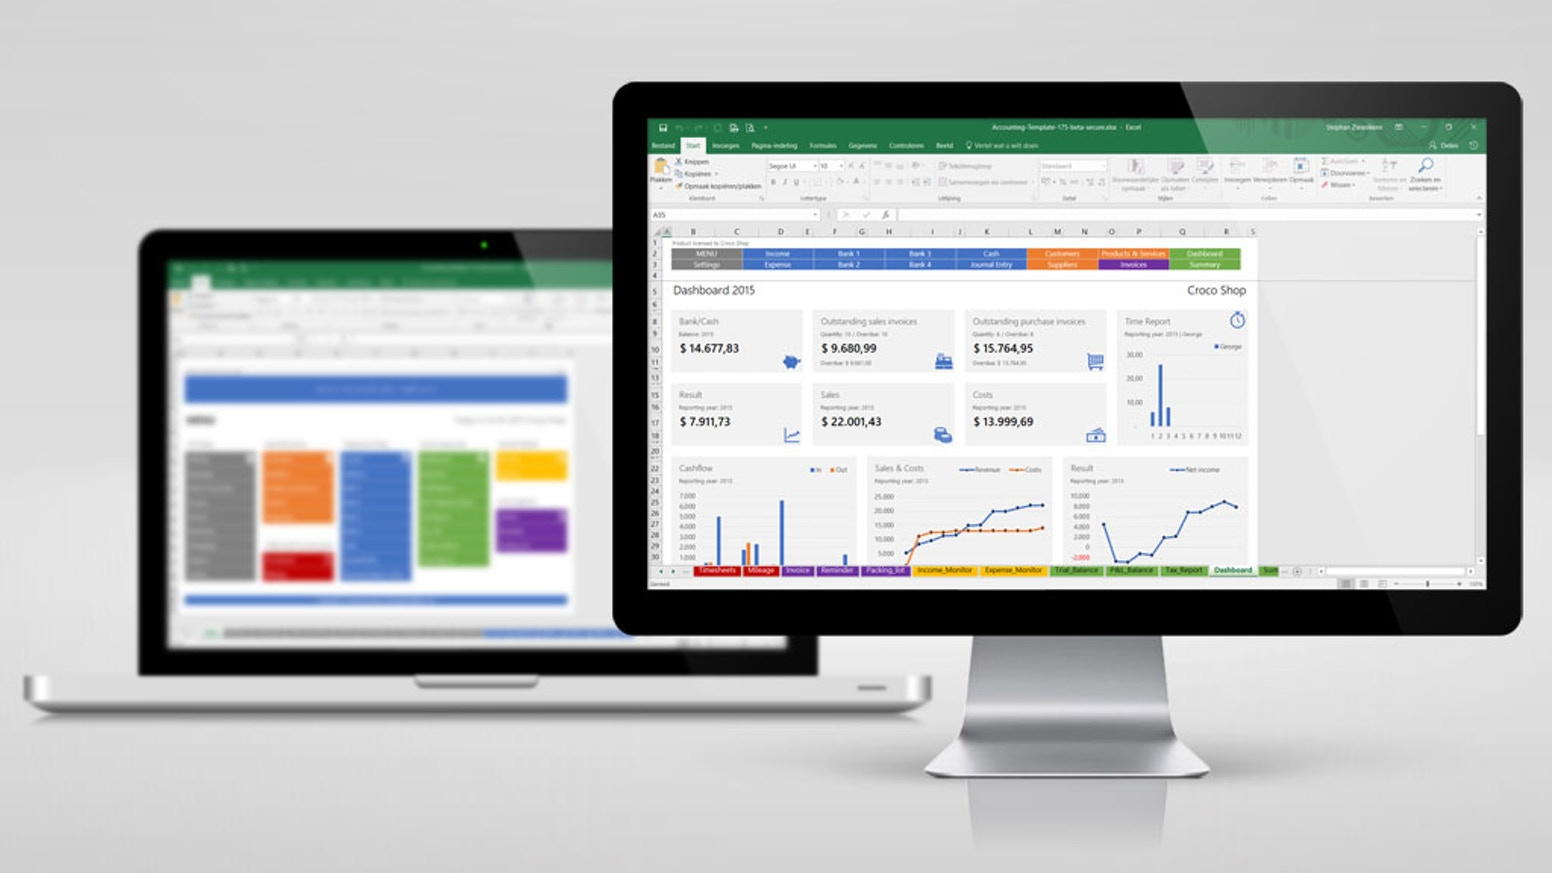 Excel accounting template by stephan zwanikken kickstarter the all in one accounting solution in excel for small business owners cheaphphosting Image collections